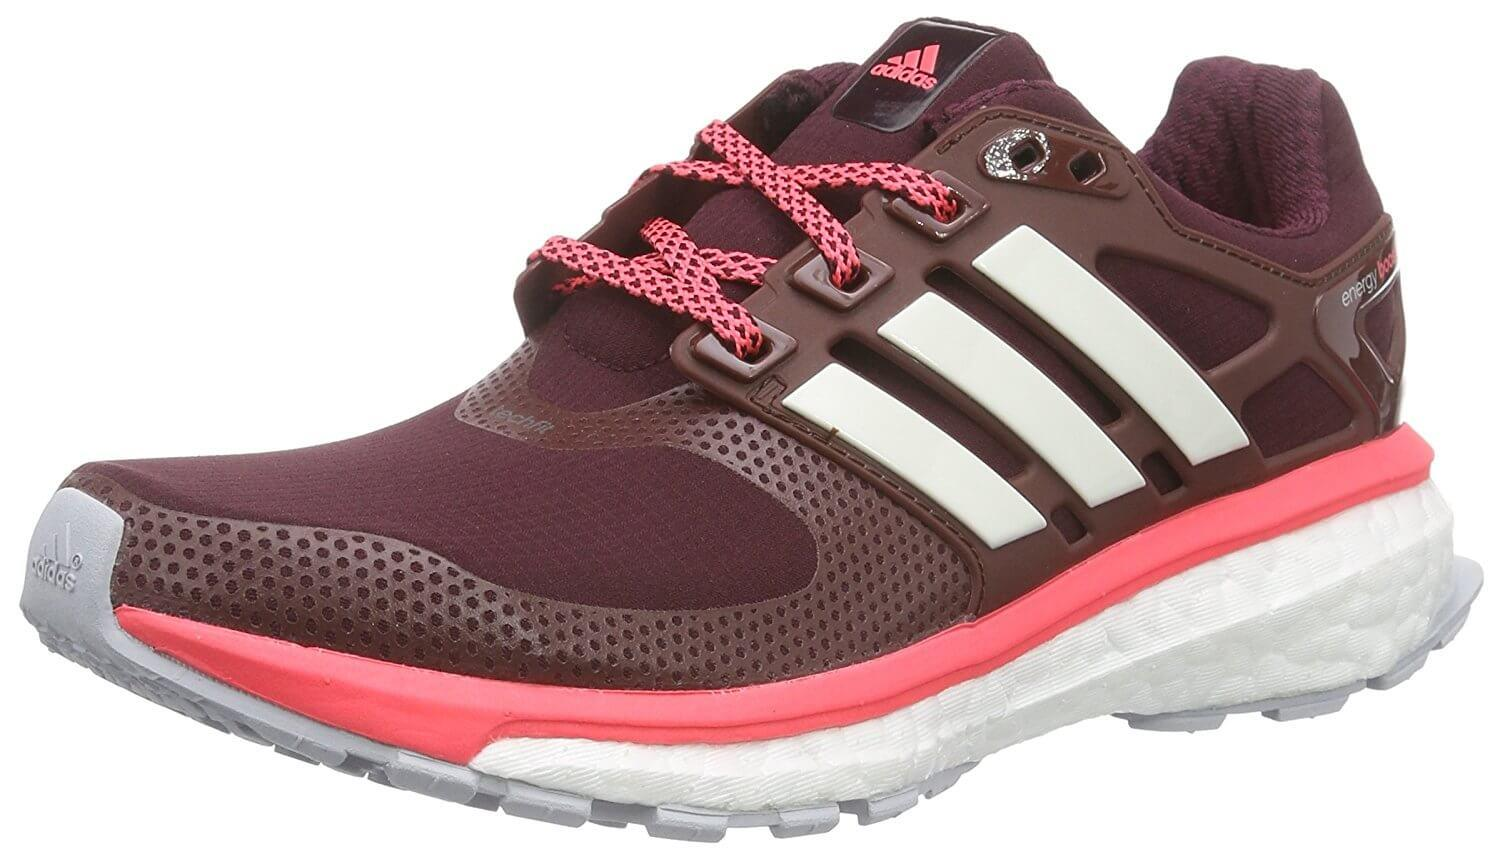 detailed look 85de6 8278d Adidas Energy Boost 2.0 ATR - To Buy or Not in Mar 2019